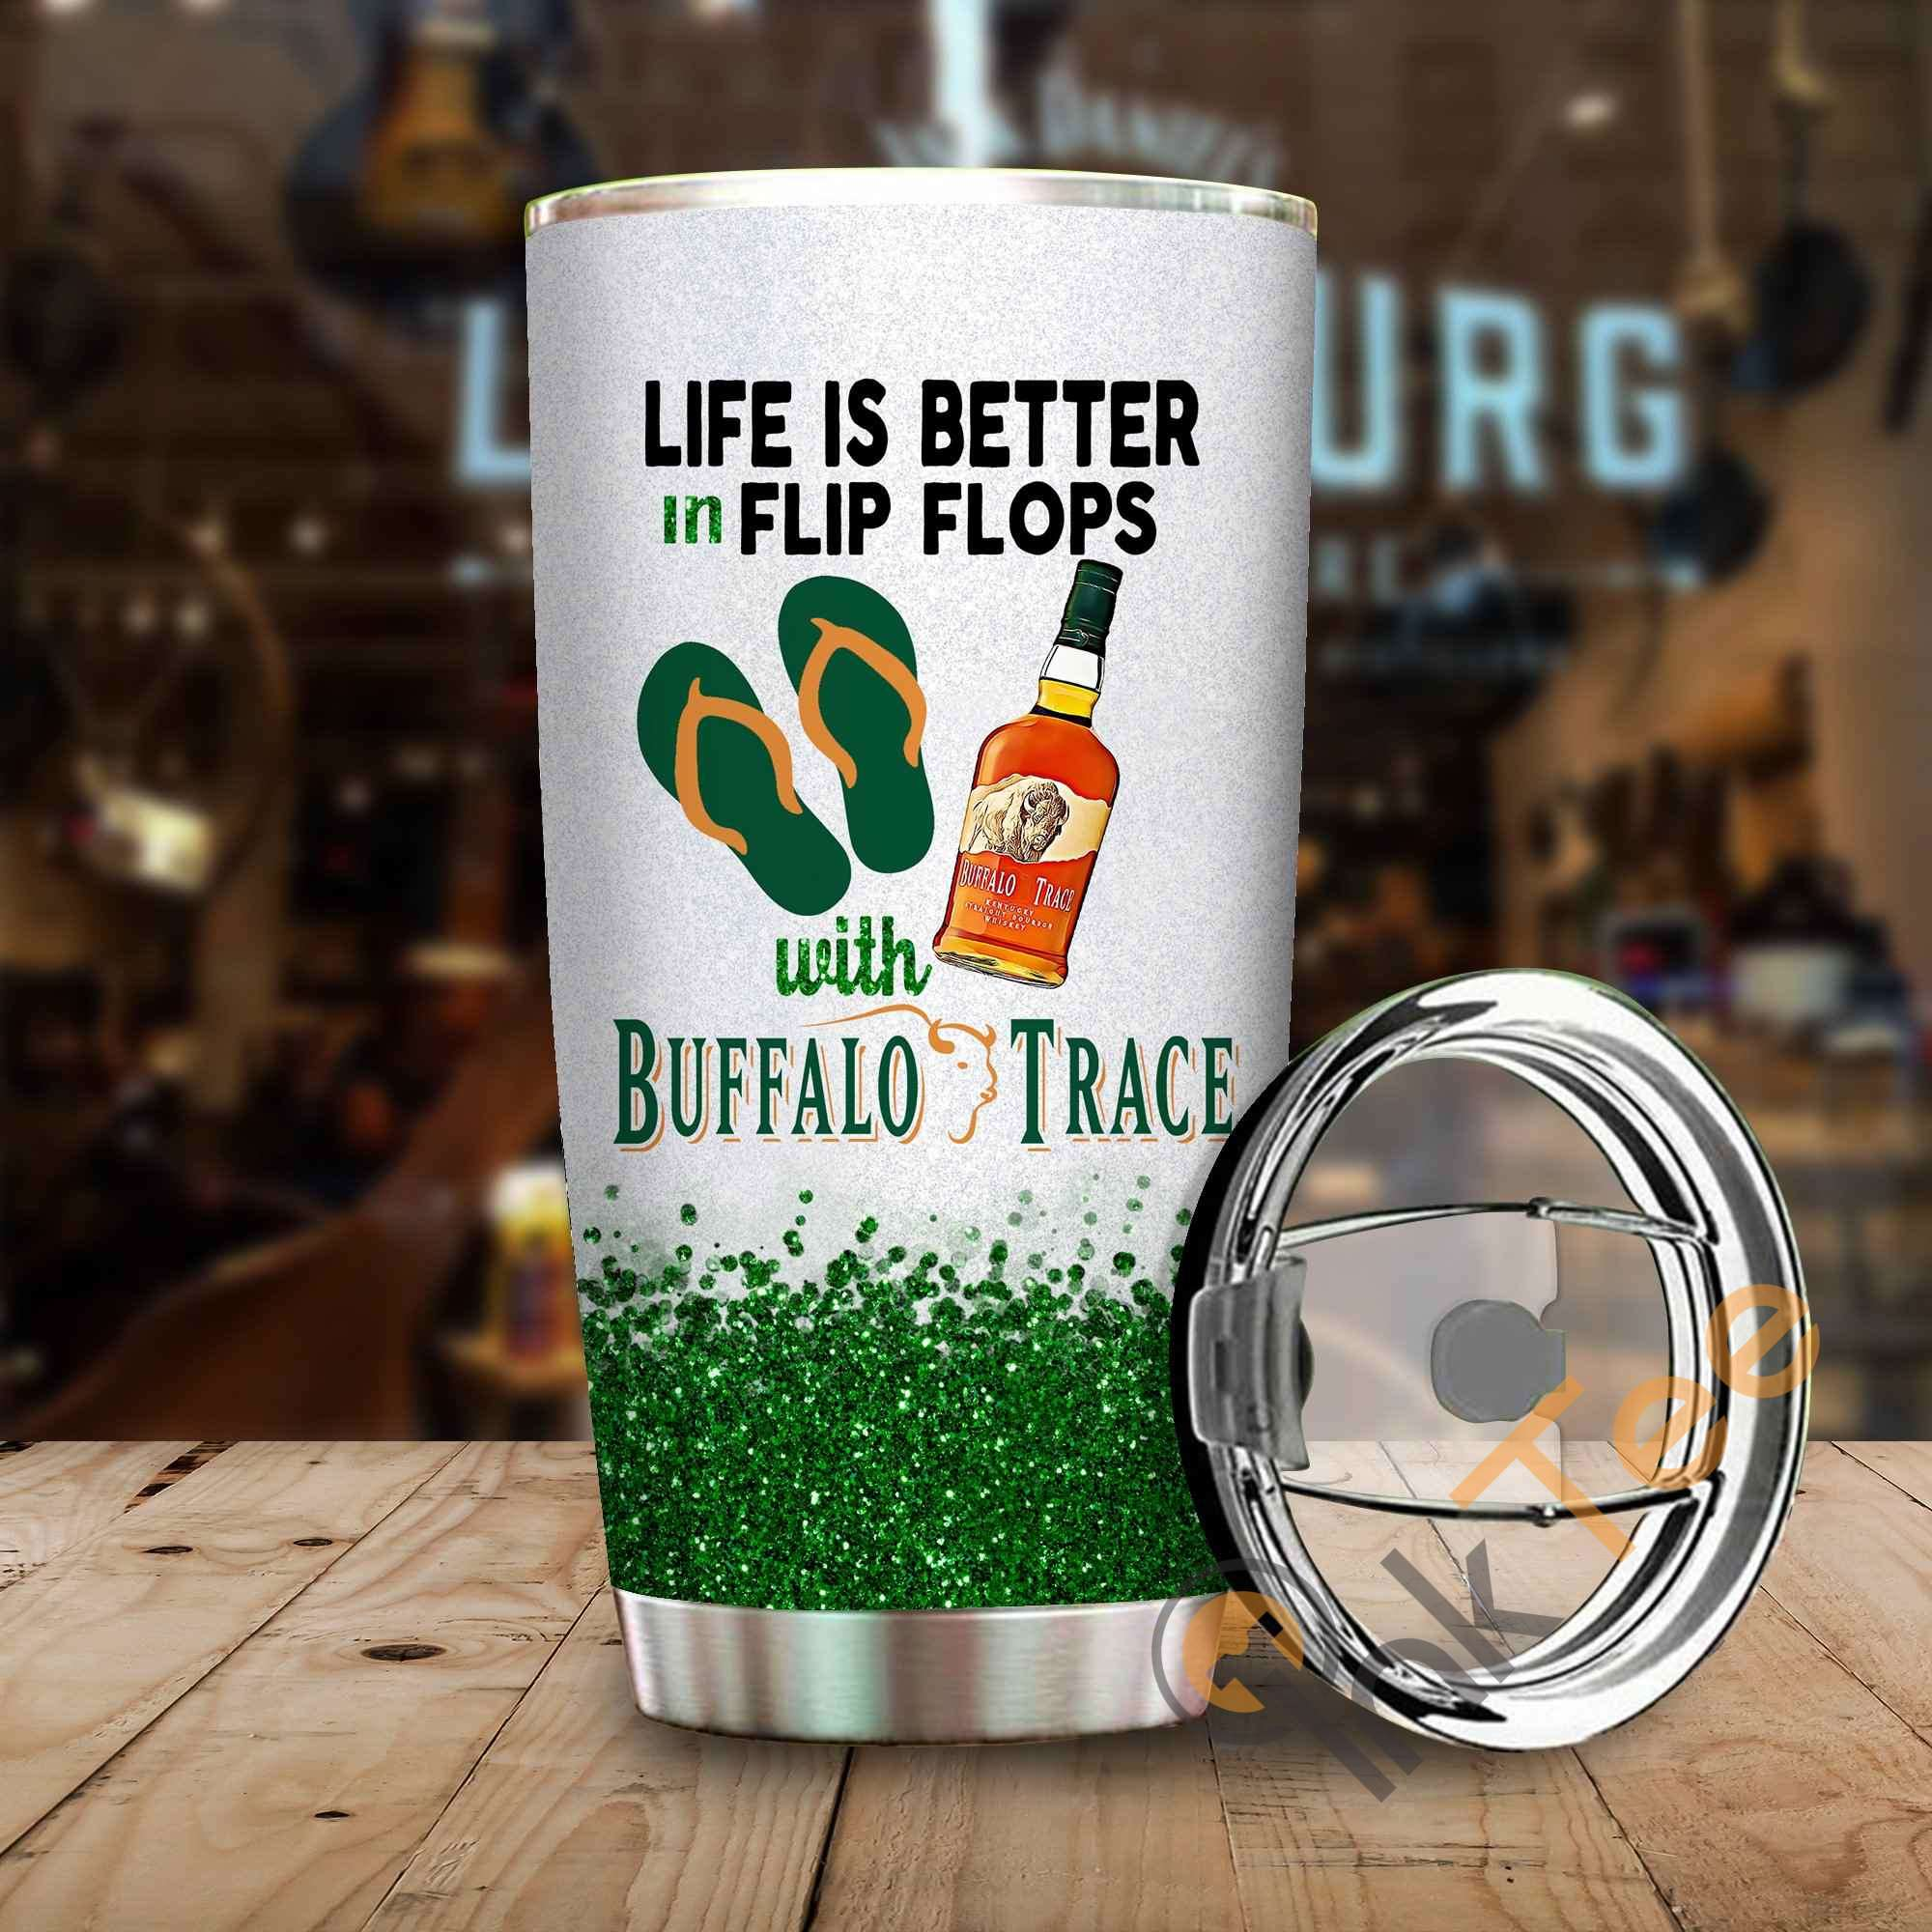 Life Is Better In Flip Flops With Buffalo Trace Amazon Best Seller Sku 3898 Stainless Steel Tumbler